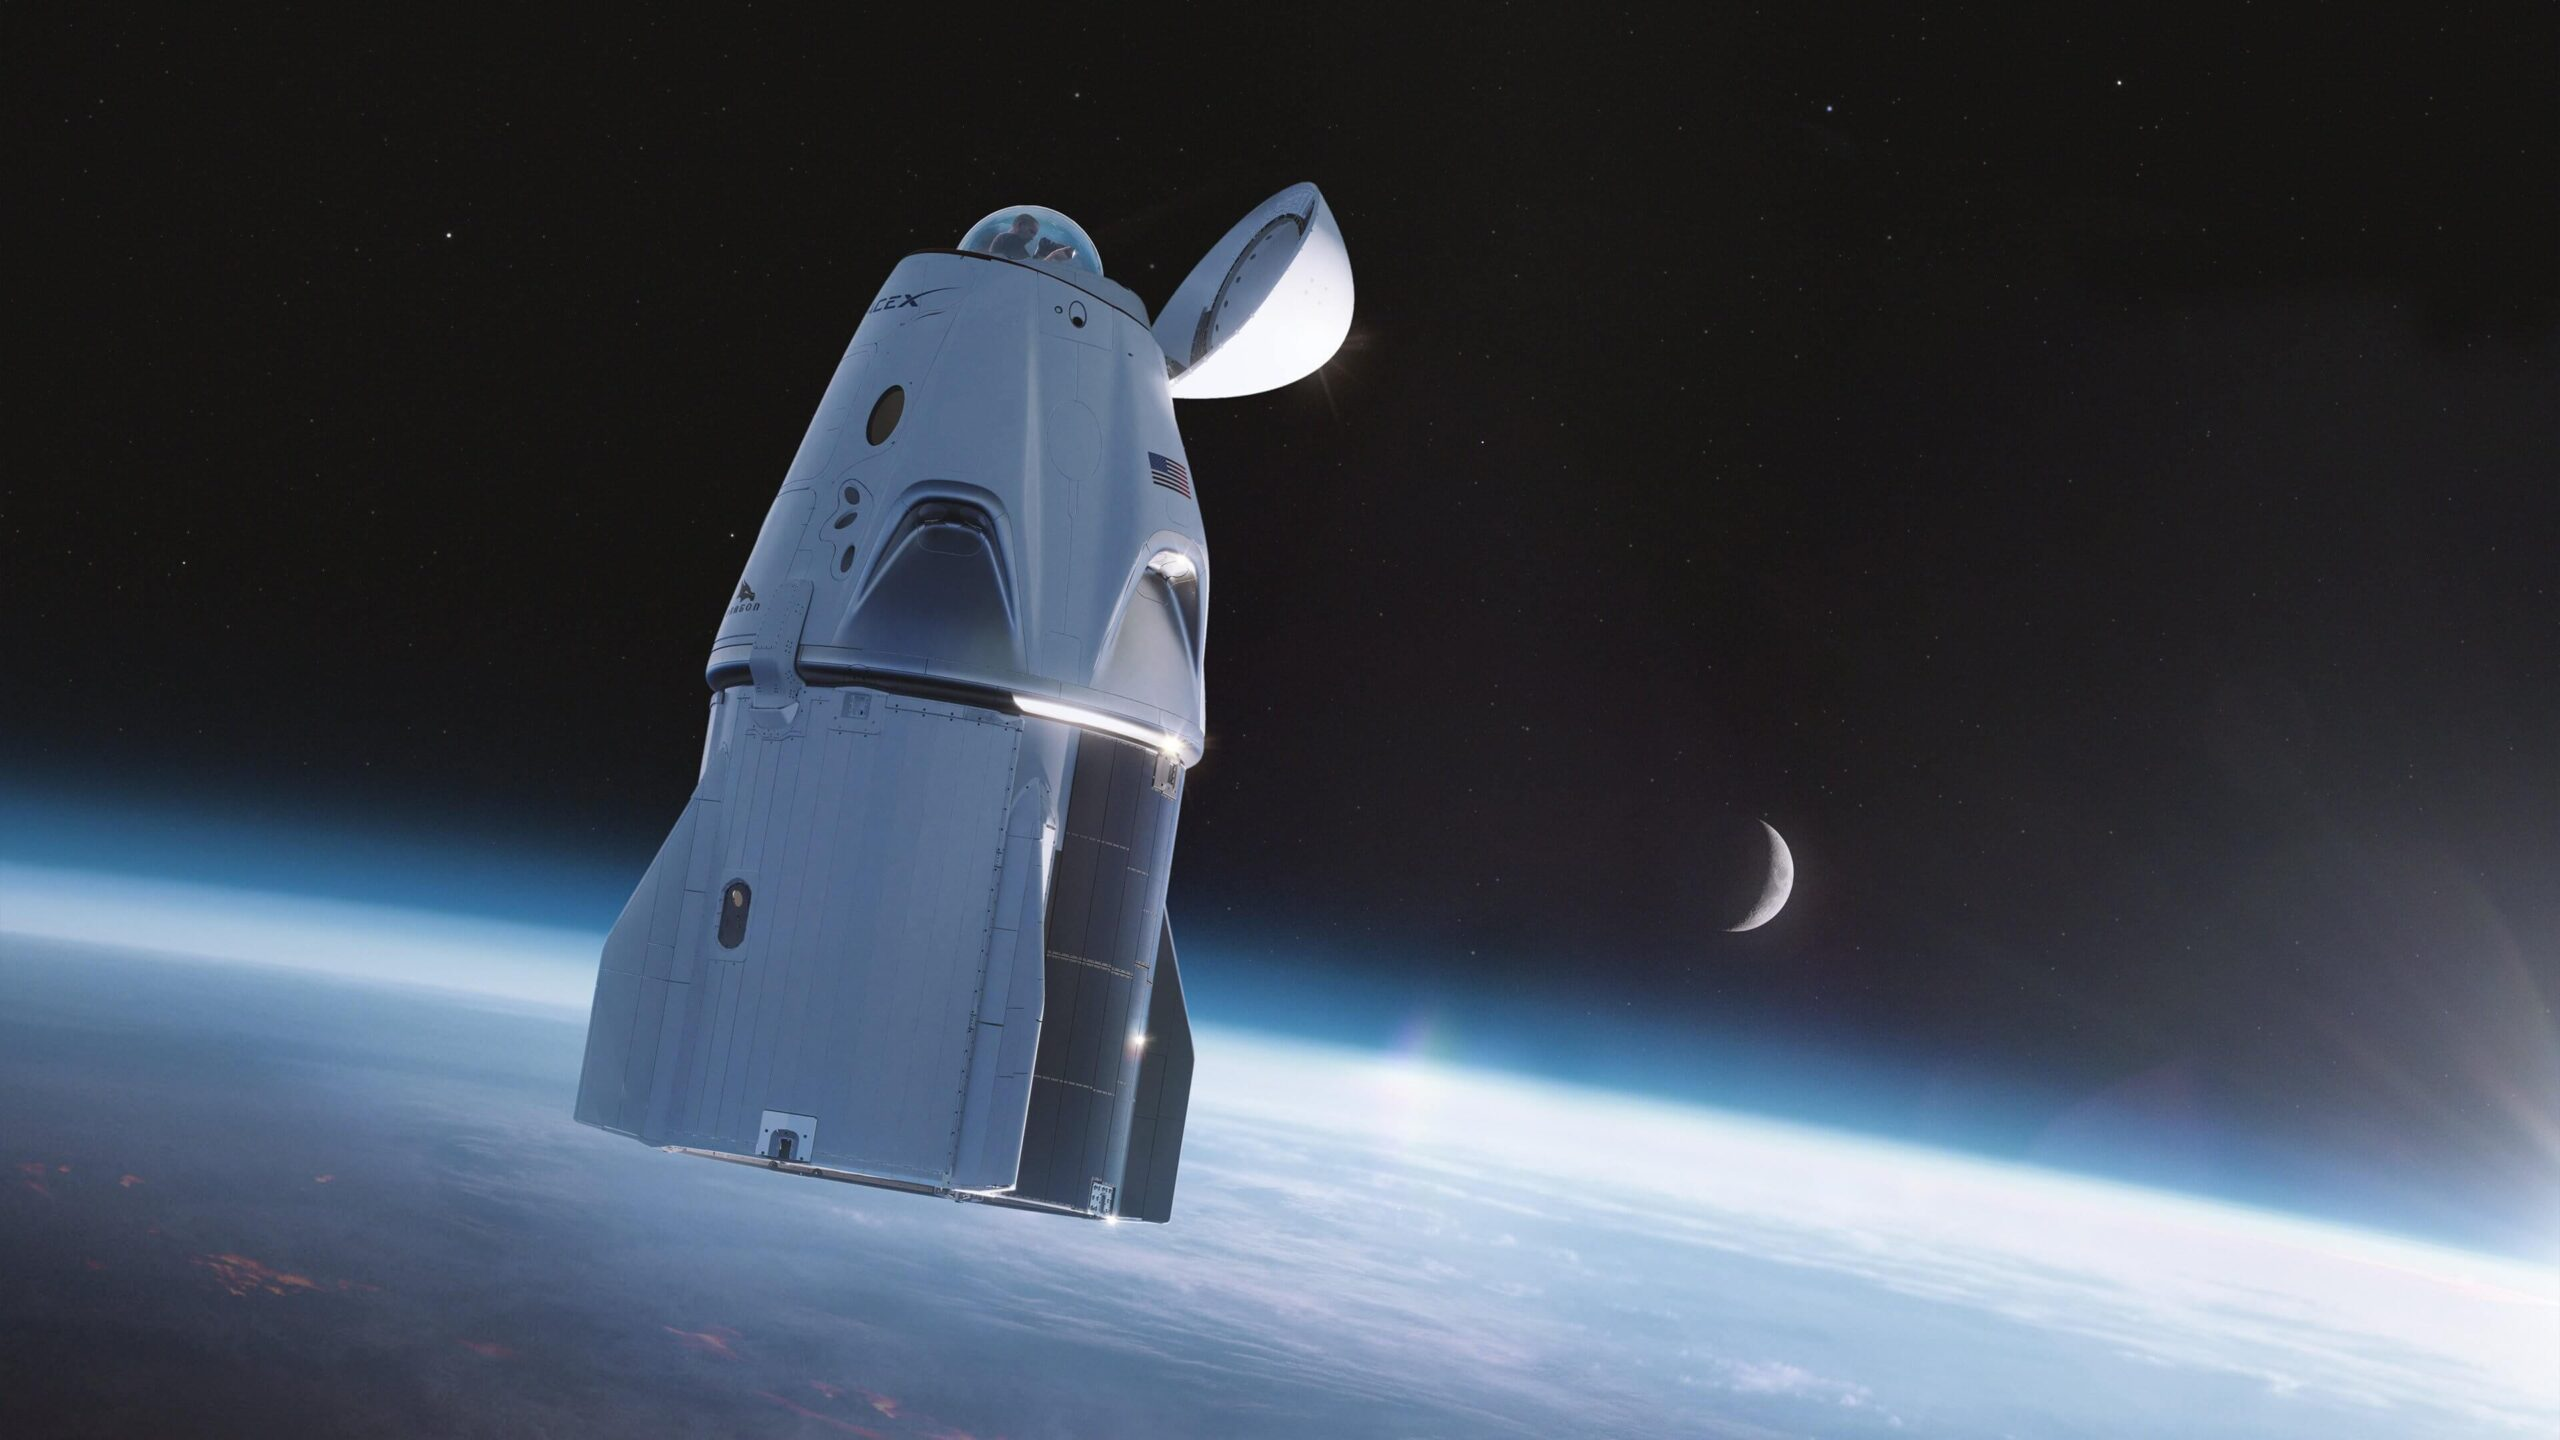 SpaceX's Inspiration4 mission becomes the first to put all-civilian into Earth orbit